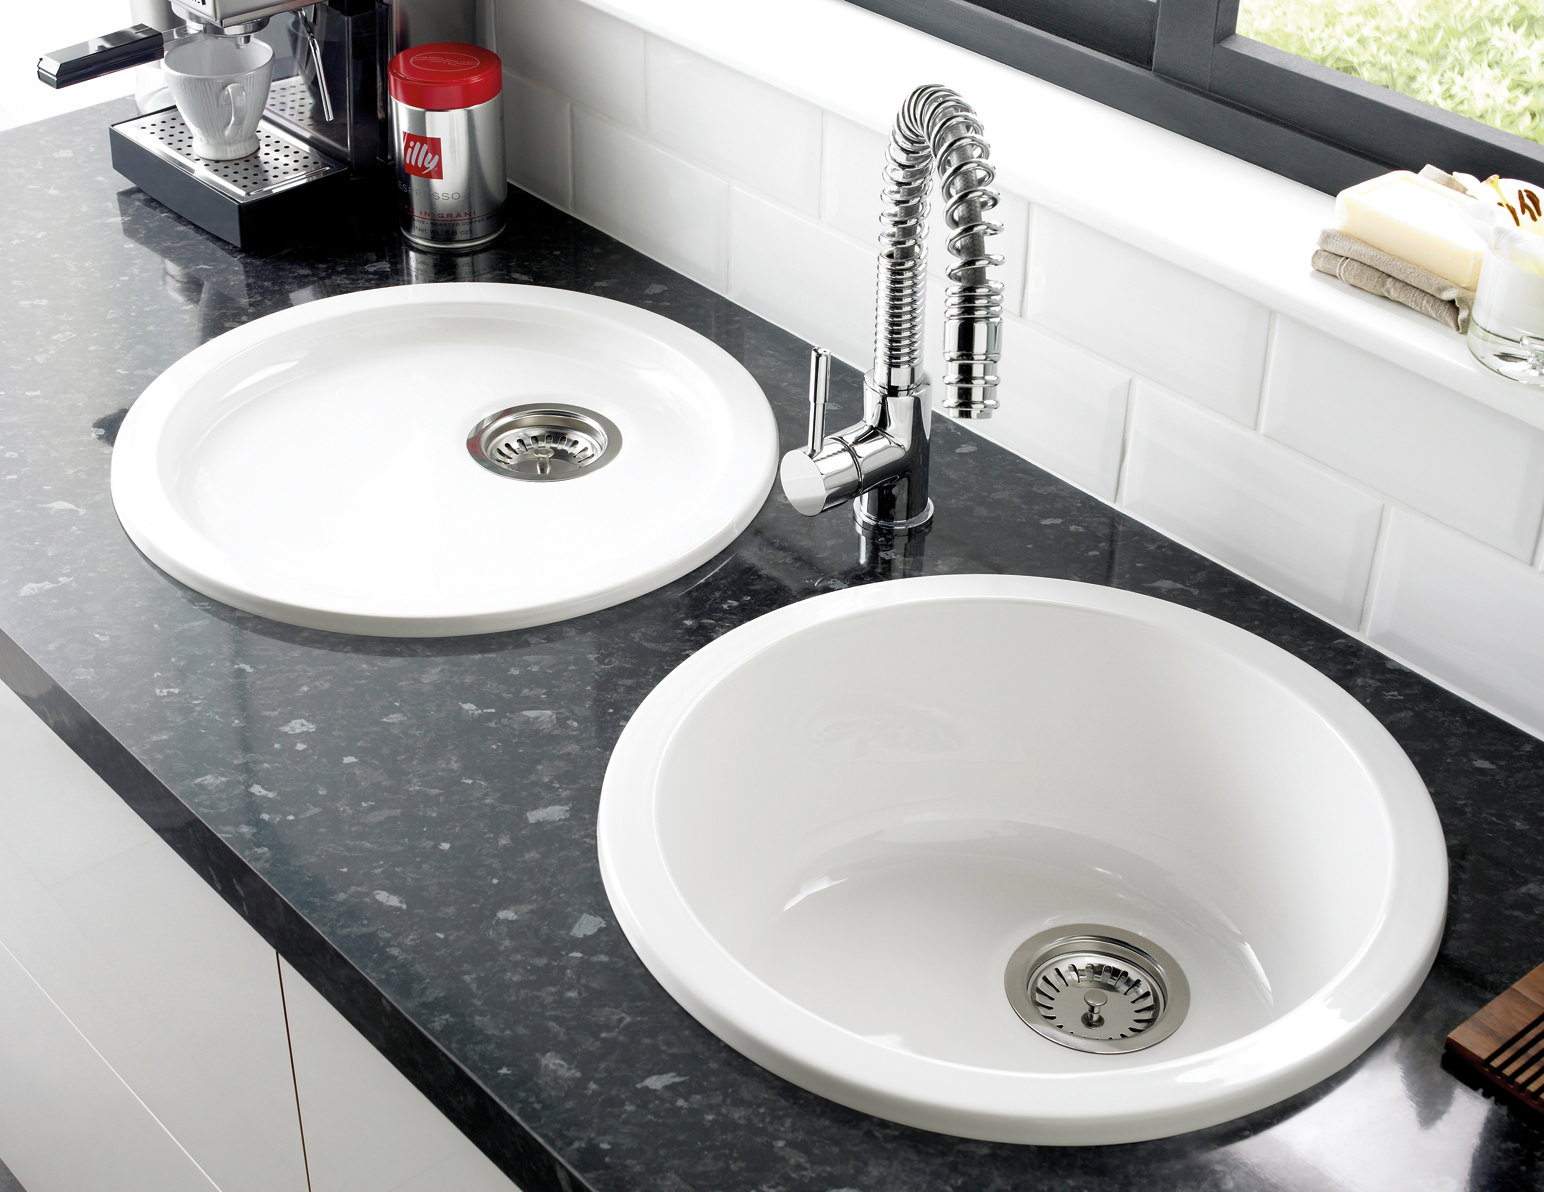 Astracast lincoln r1 460mm round bowl ceramic inset or undermount sink lnr1 - Ikea vaisselle porcelaine ...